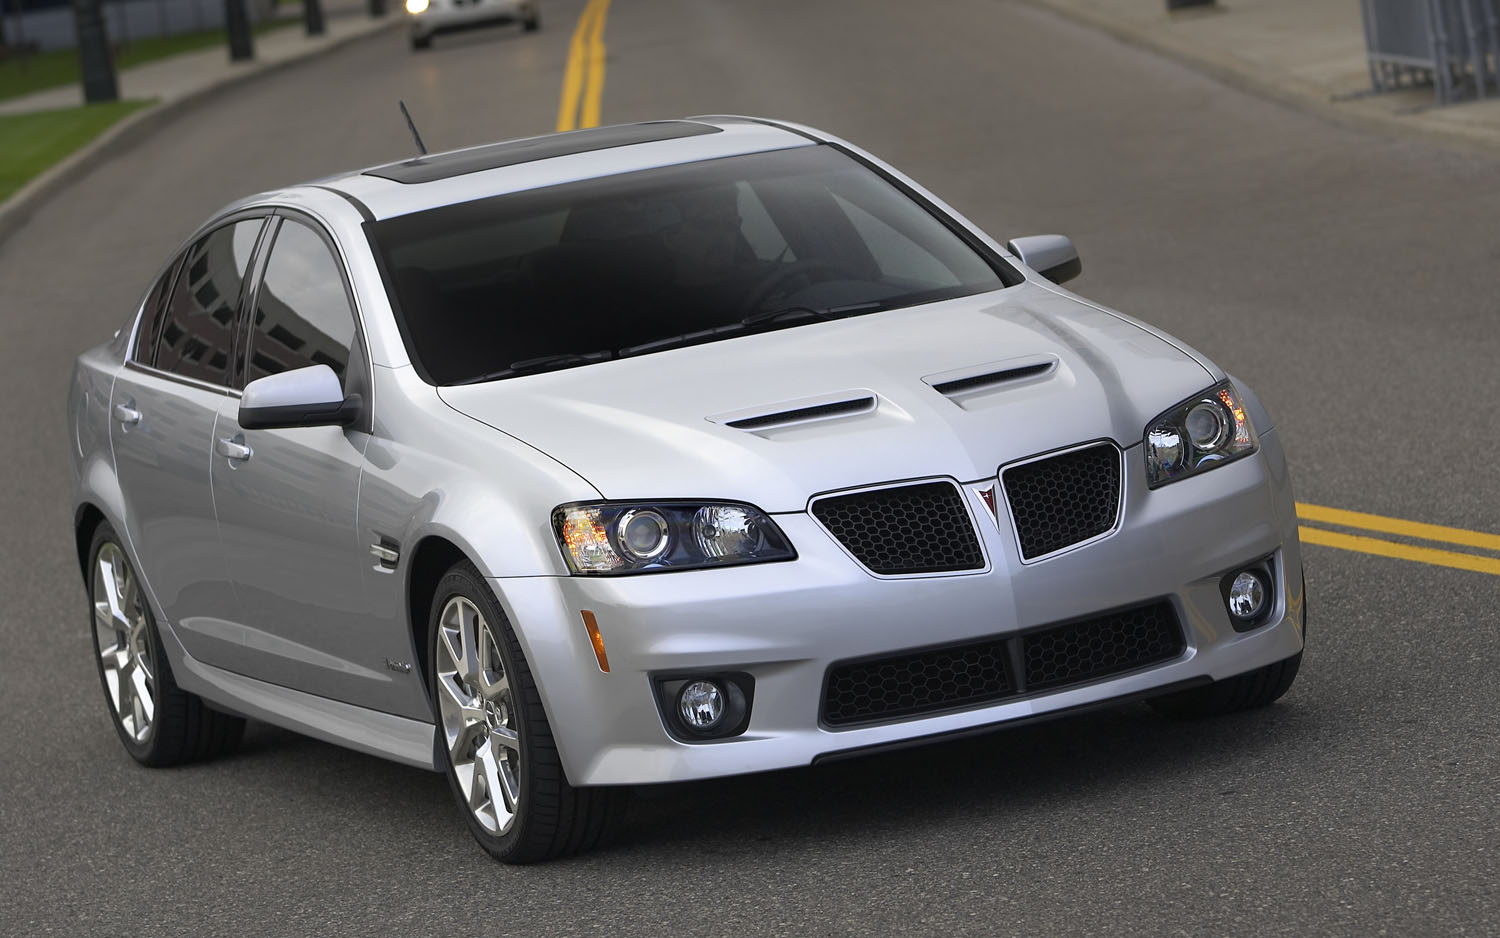 2009 Pontiac G8 Front Three Quarter 21